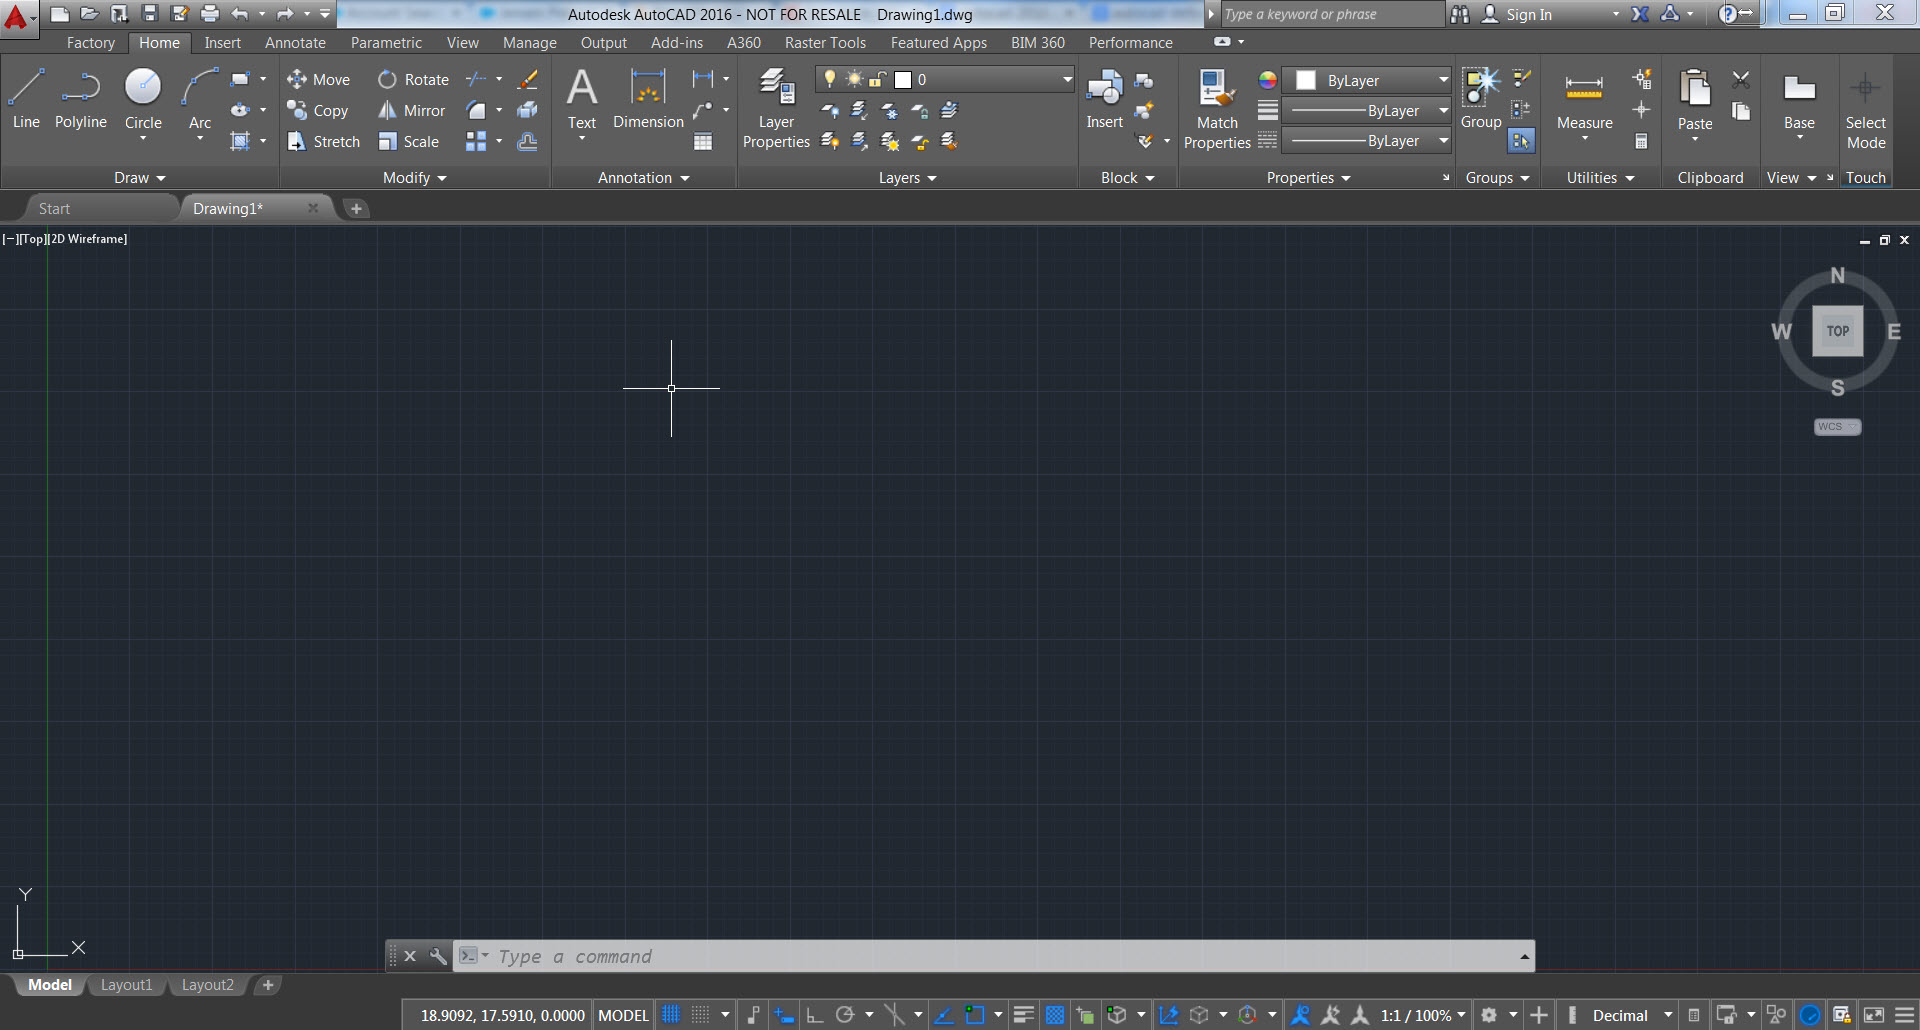 Restoring Autocad Classic Workspace In 2015 And Beyond Ketiv Click Image To See Larger View Here Or On The A Version